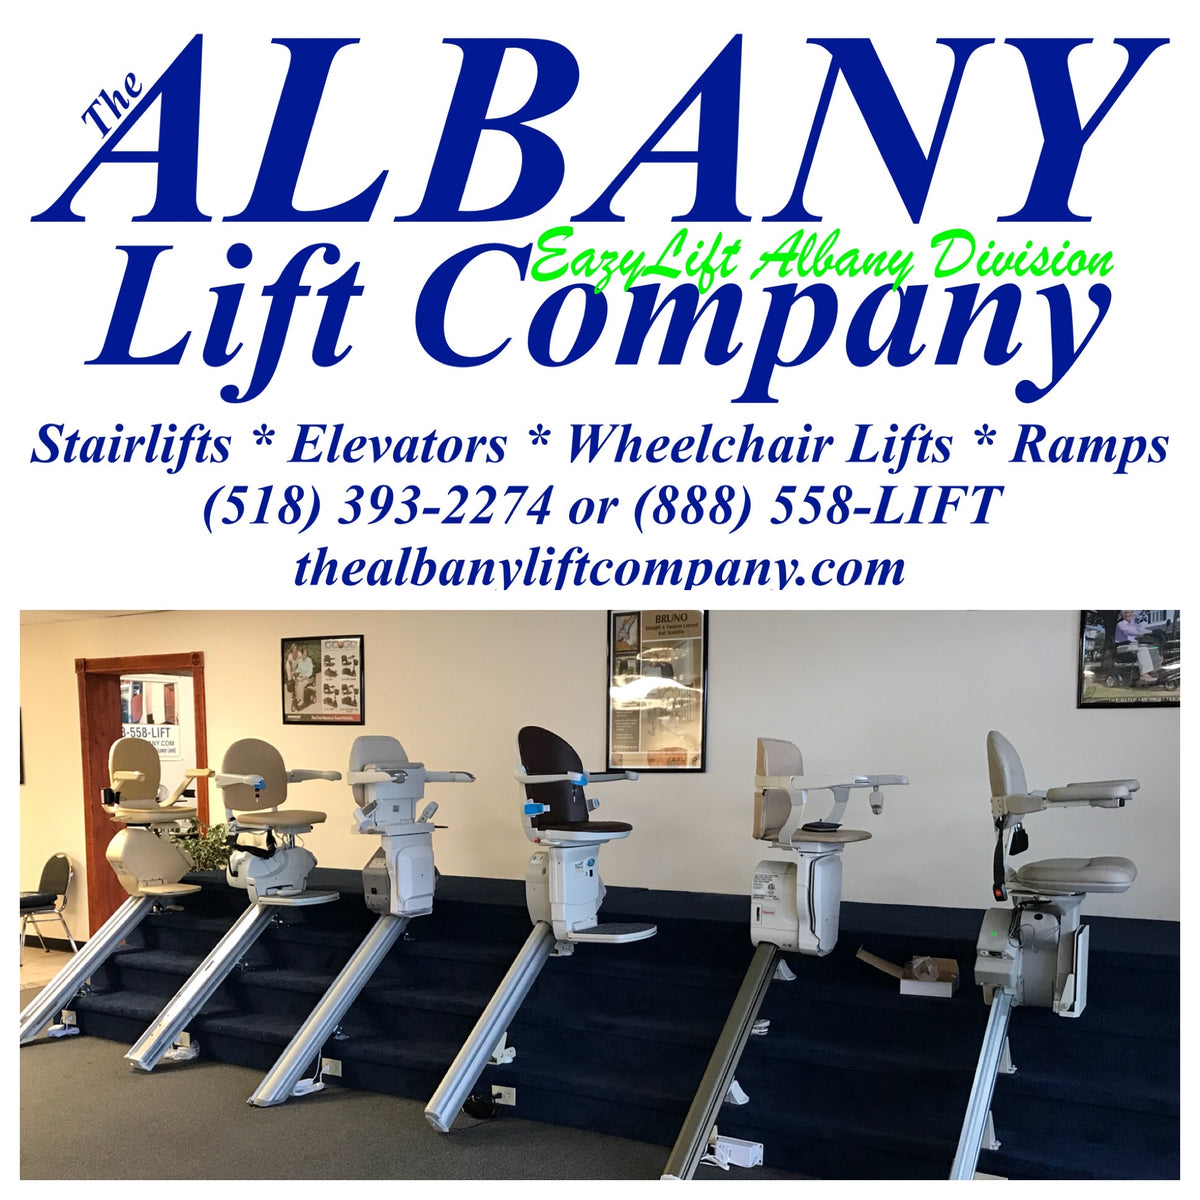 About Us – Thealbanyliftcompany